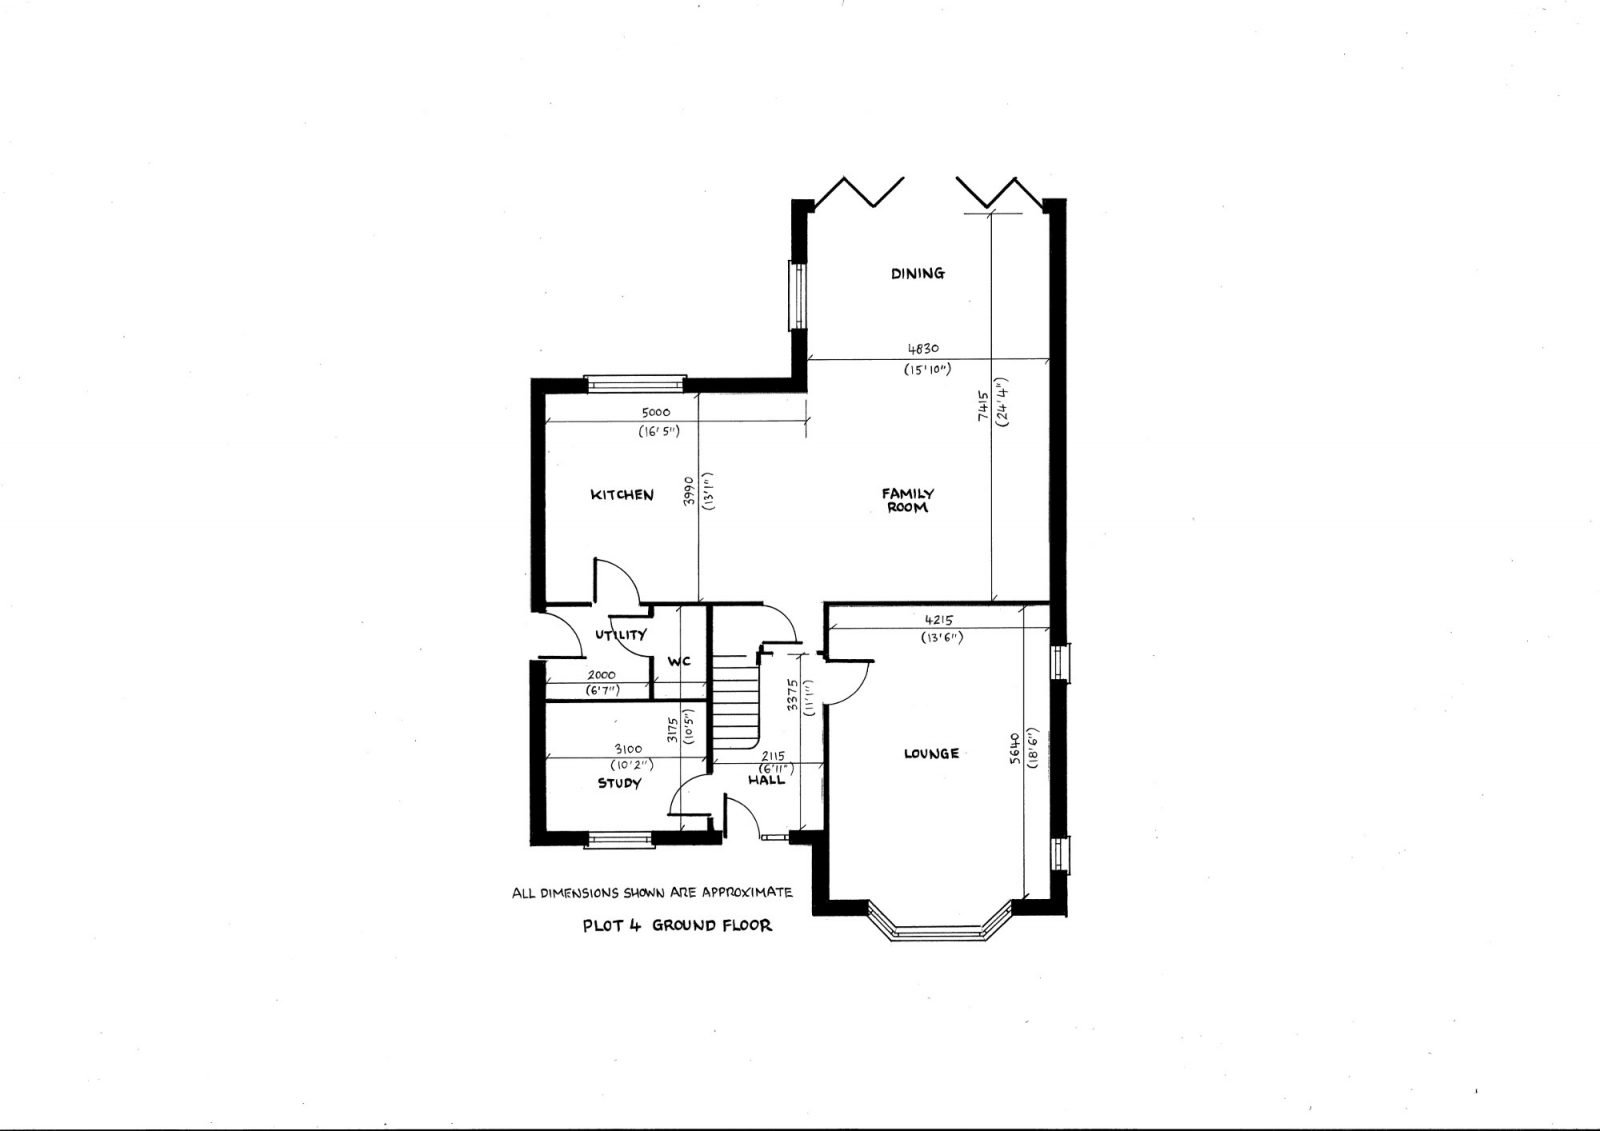 plot-4-ground-floor-plan